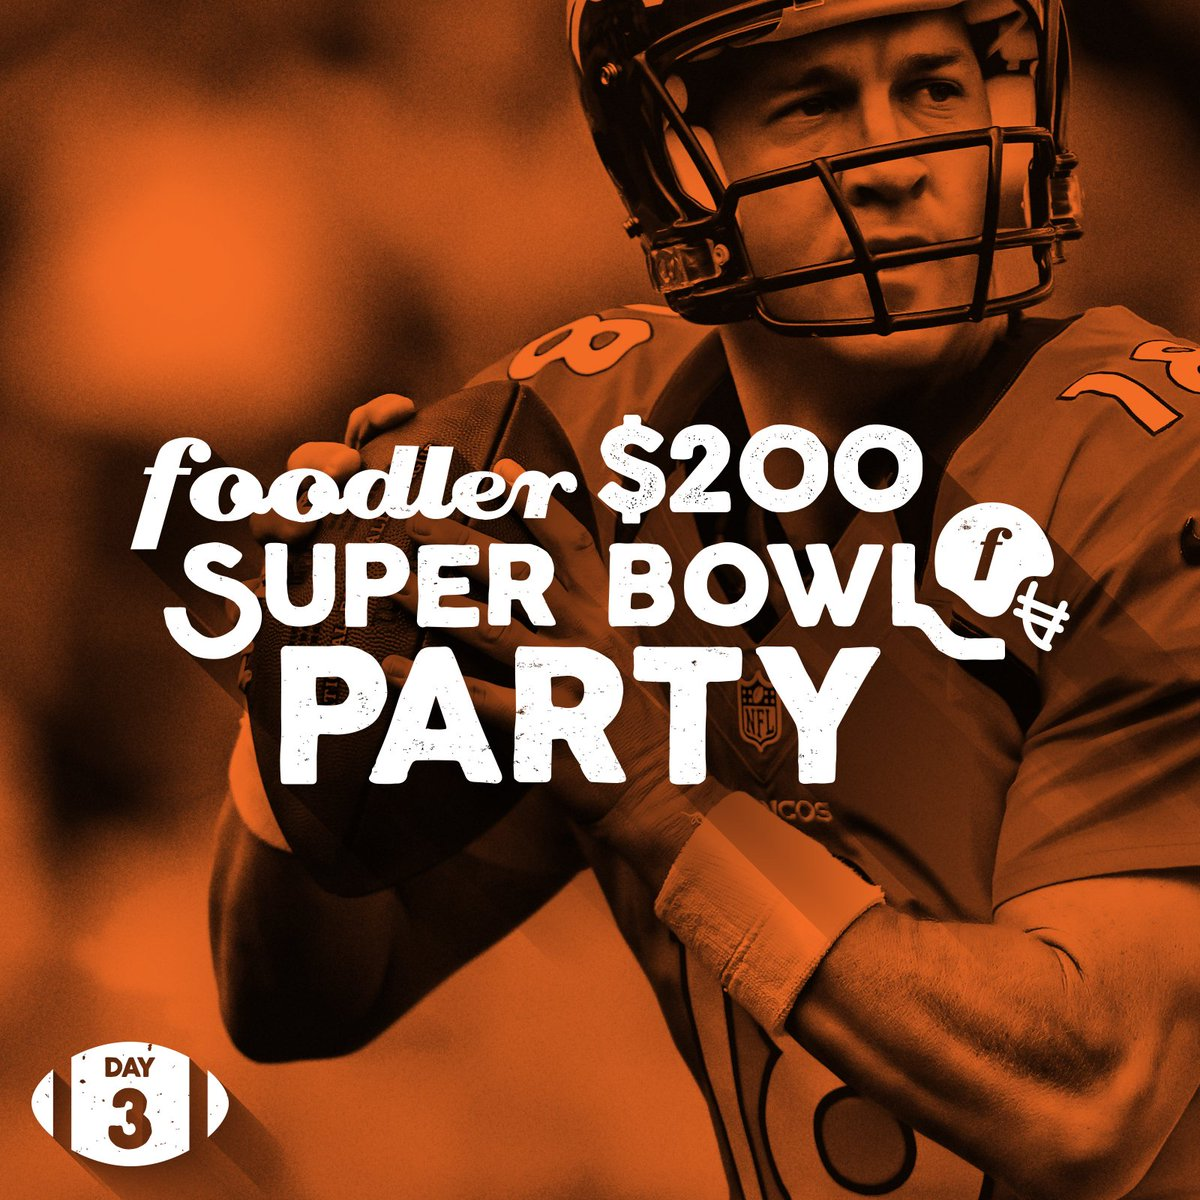 Day 3! We want to cater your #SuperBowl party! Follow us on Twitter and retweet for a chance to win! #foodlerftw https://t.co/NhFKZmIB5r